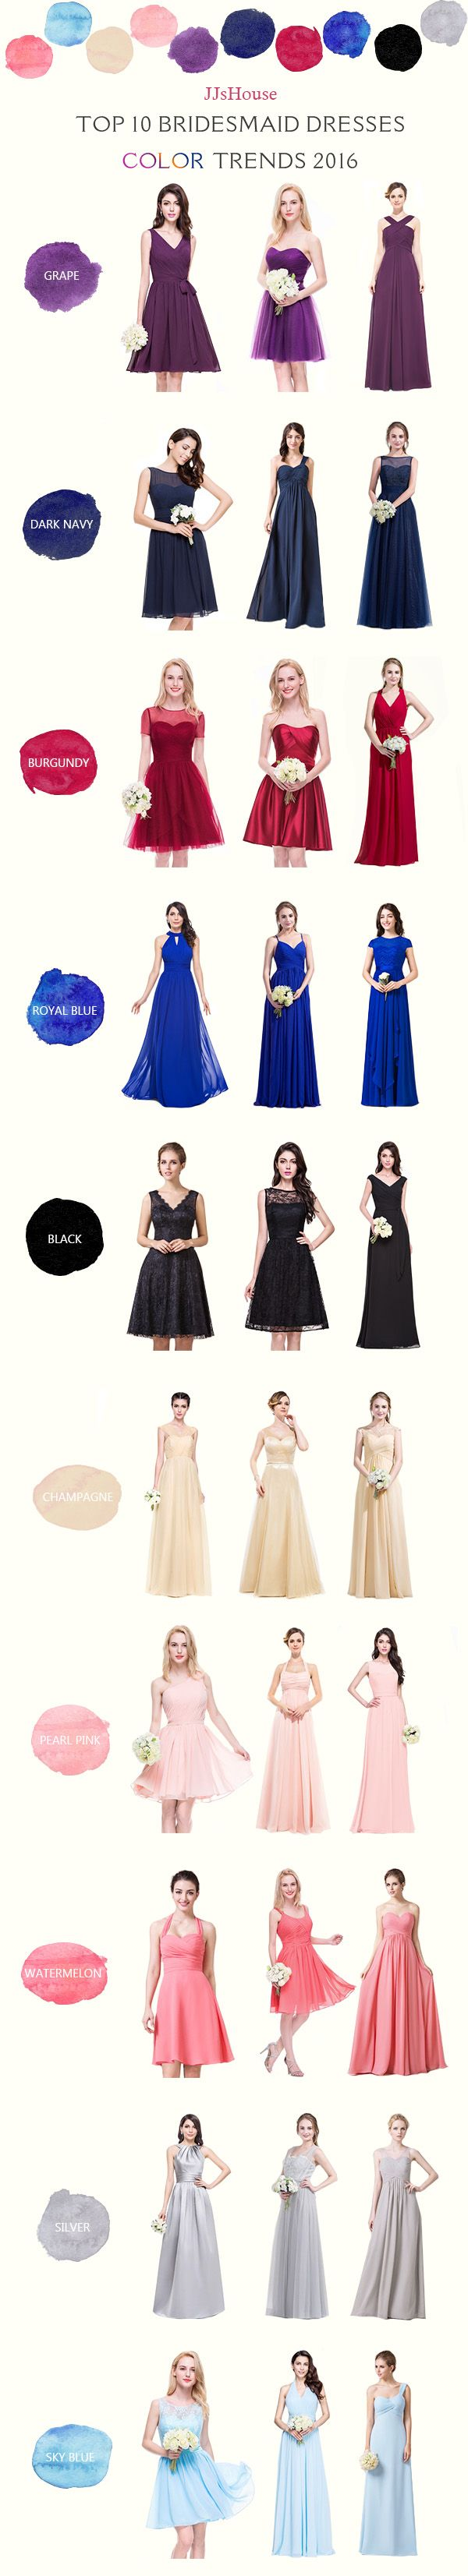 Top 10 2016 Bridesmaid Dress Color Trends Helpful color scheme when choosing your Bridesmaid Dress We have the perfect shades for every season, from wintery Dark Navy, to summery Fuchsia.   #JJsHouse